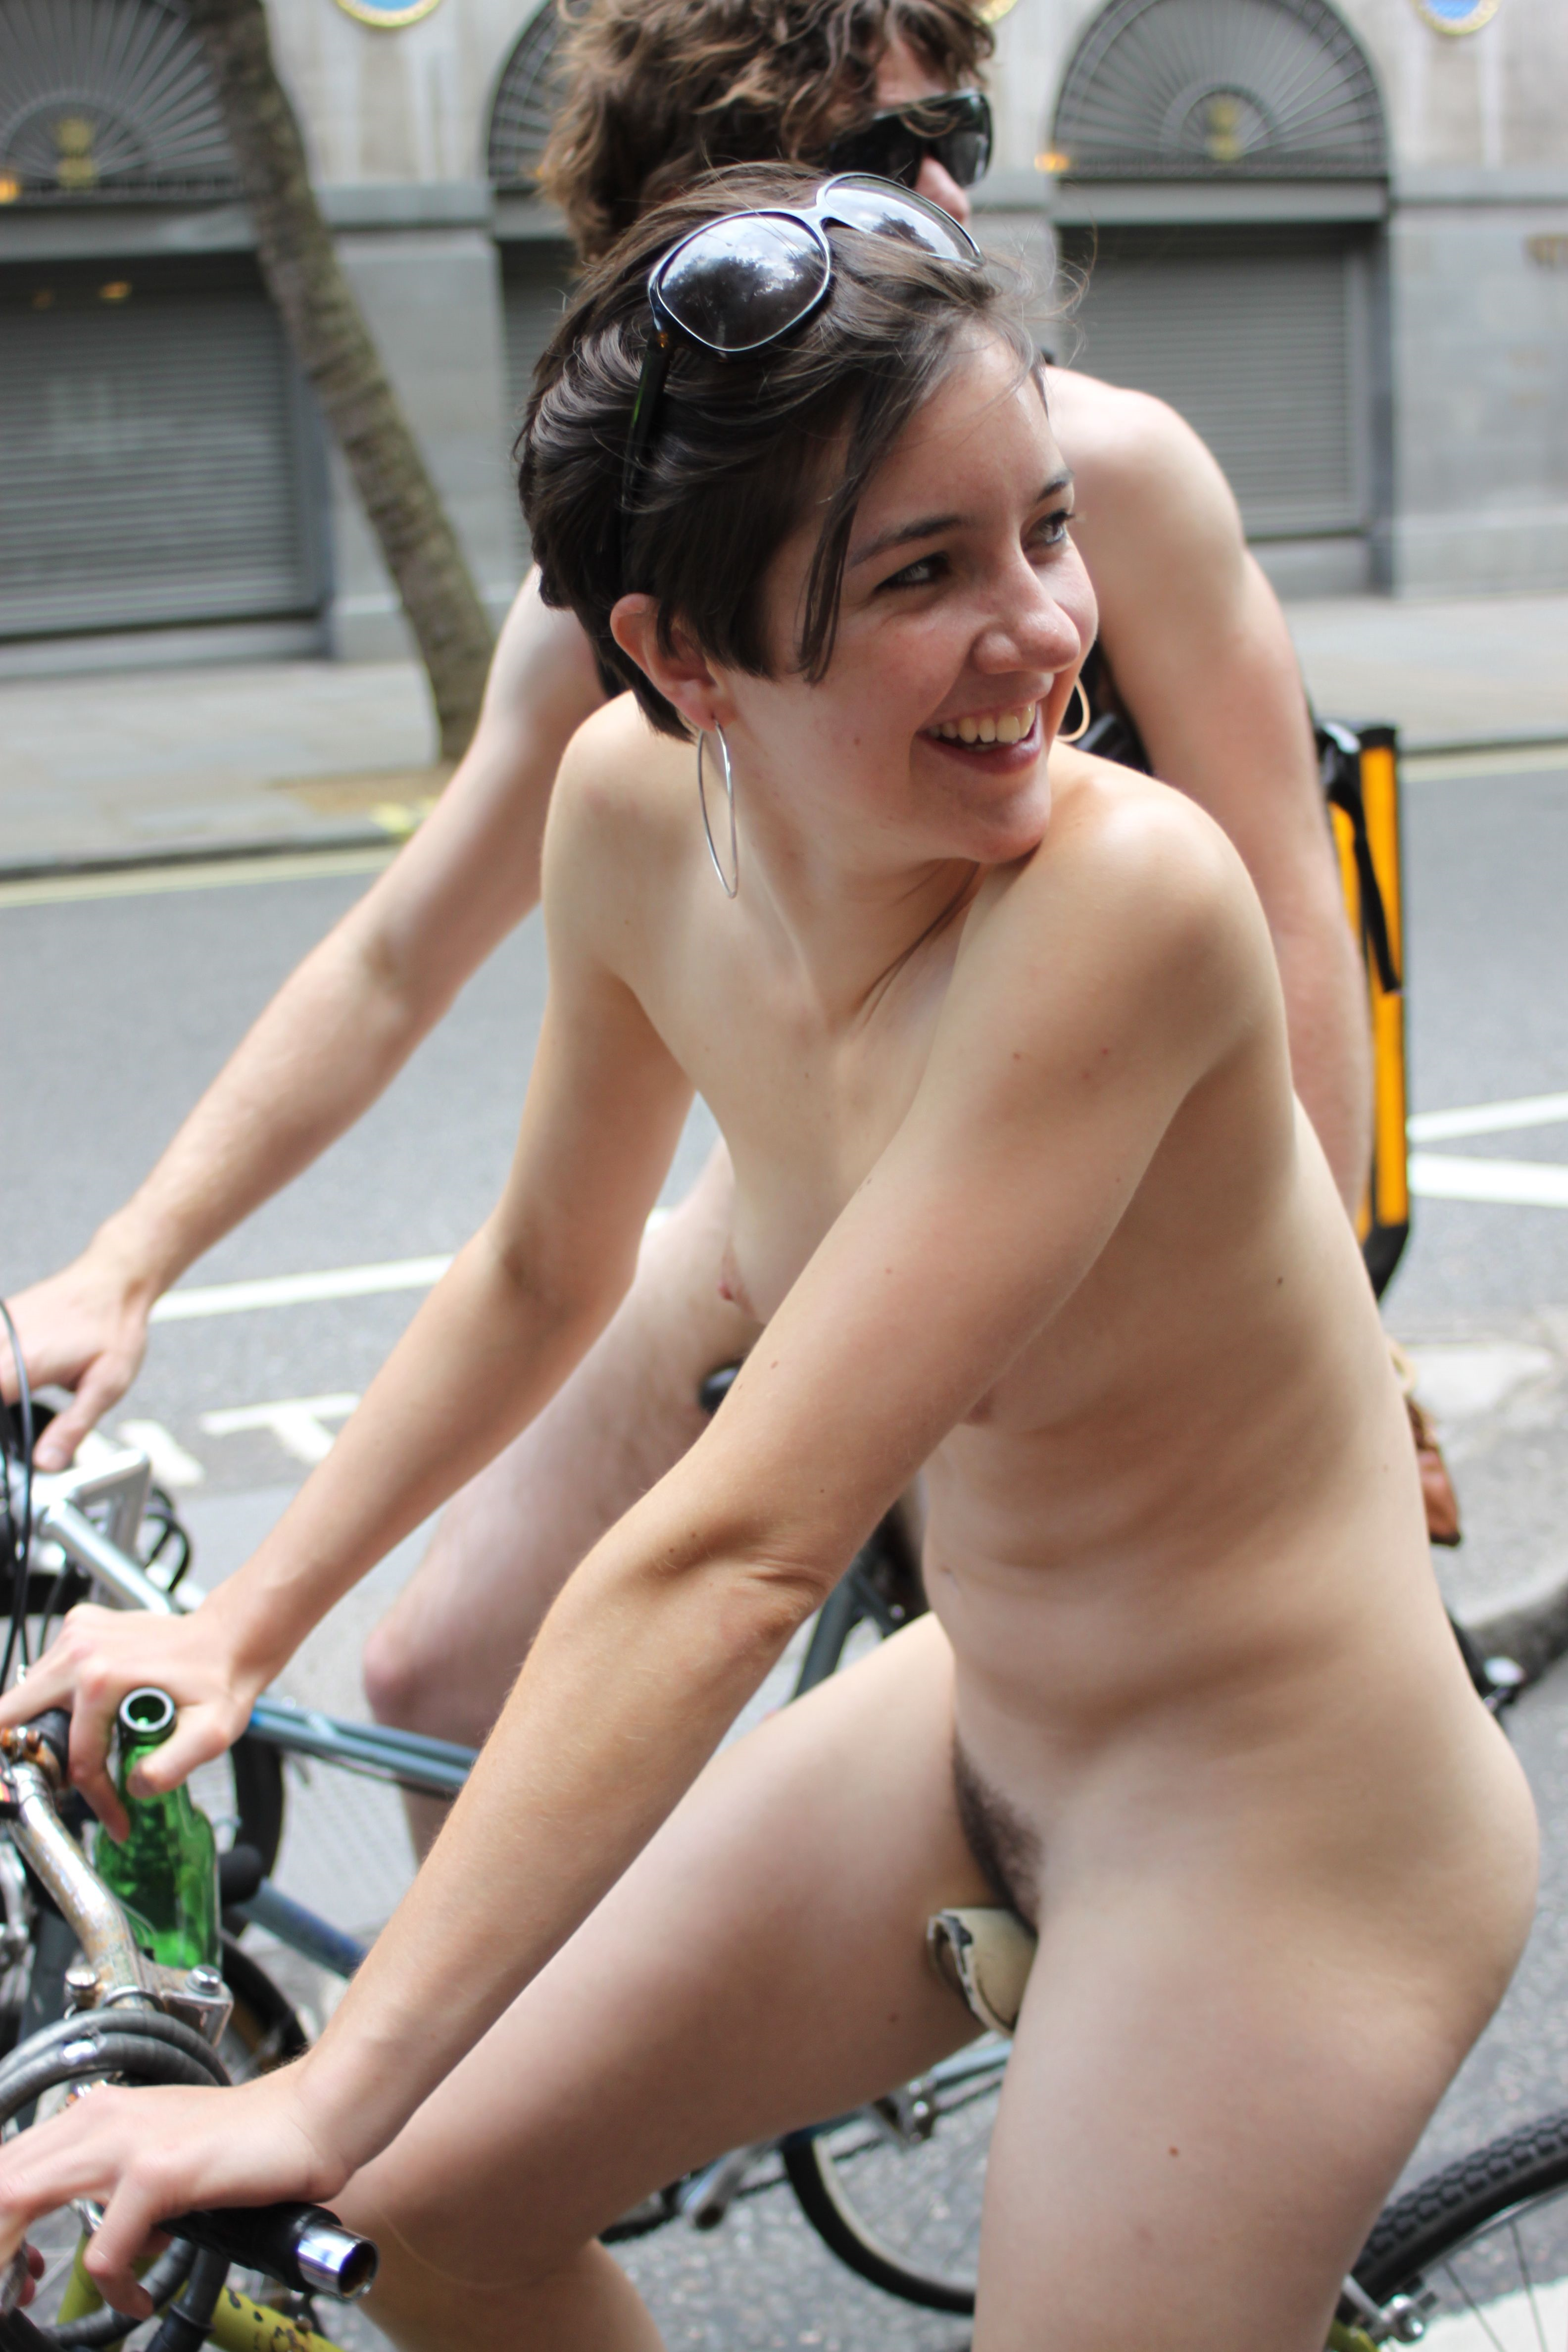 Pity, bike girl porn consider, that